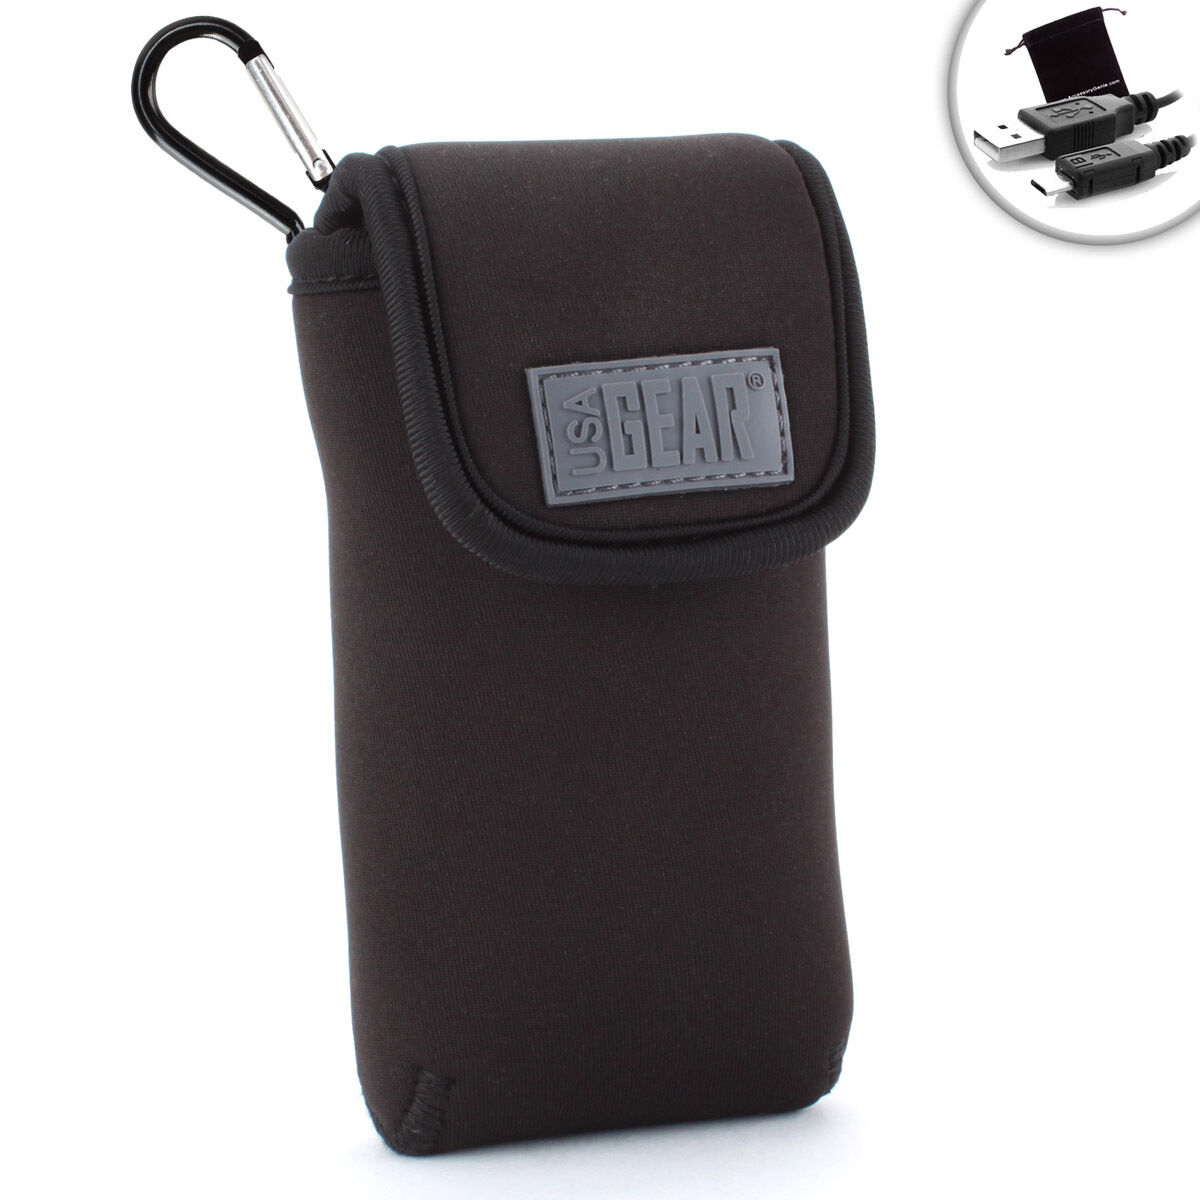 USA Gear Portable Pocket Wi-Fi Hotspot Carrying Case with Ca